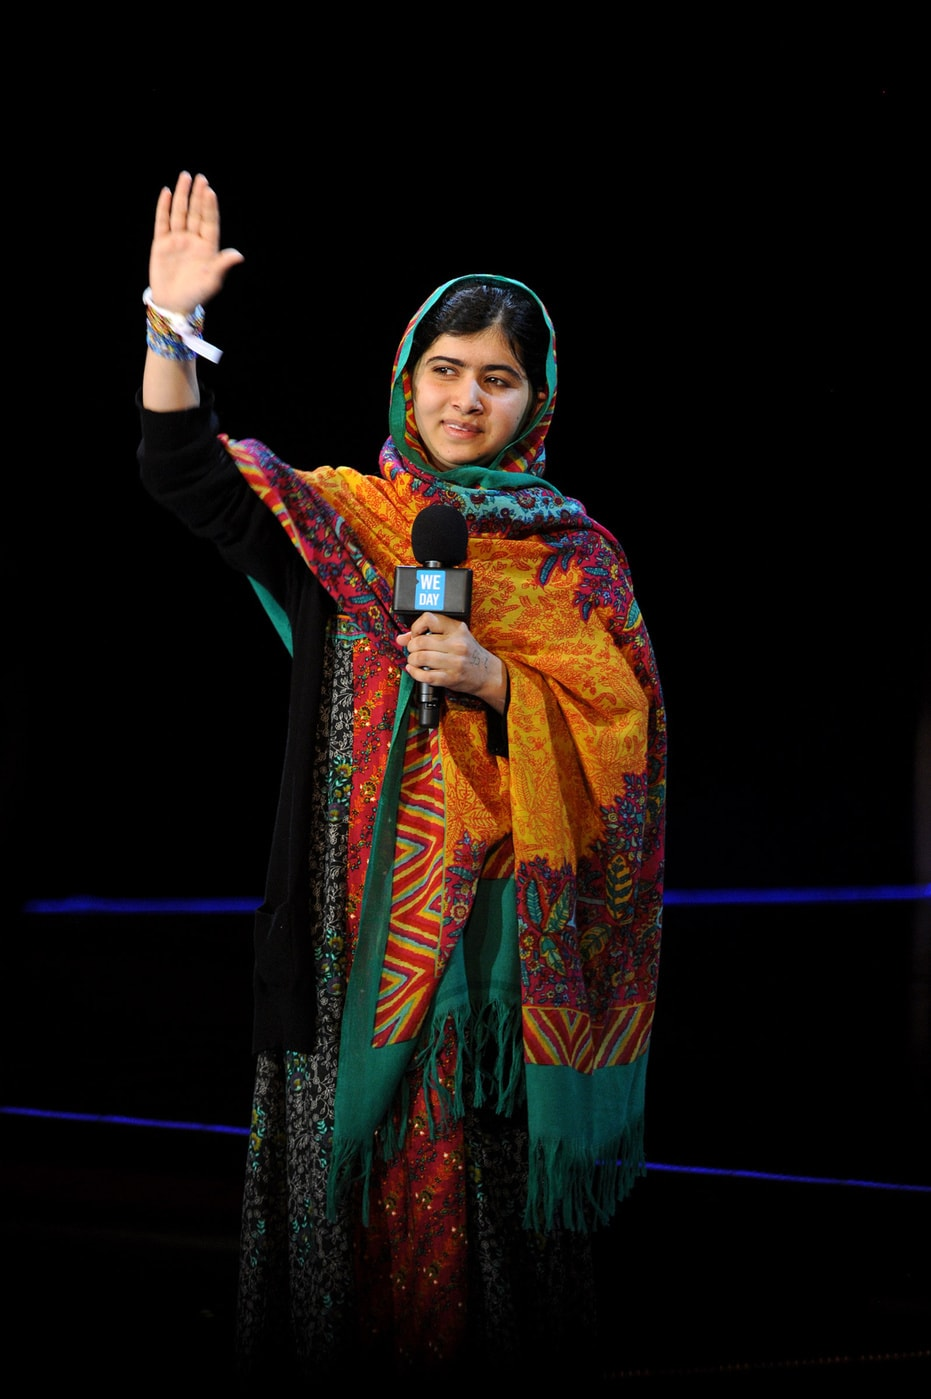 Malala Yousafzai at the We Day UK event in London